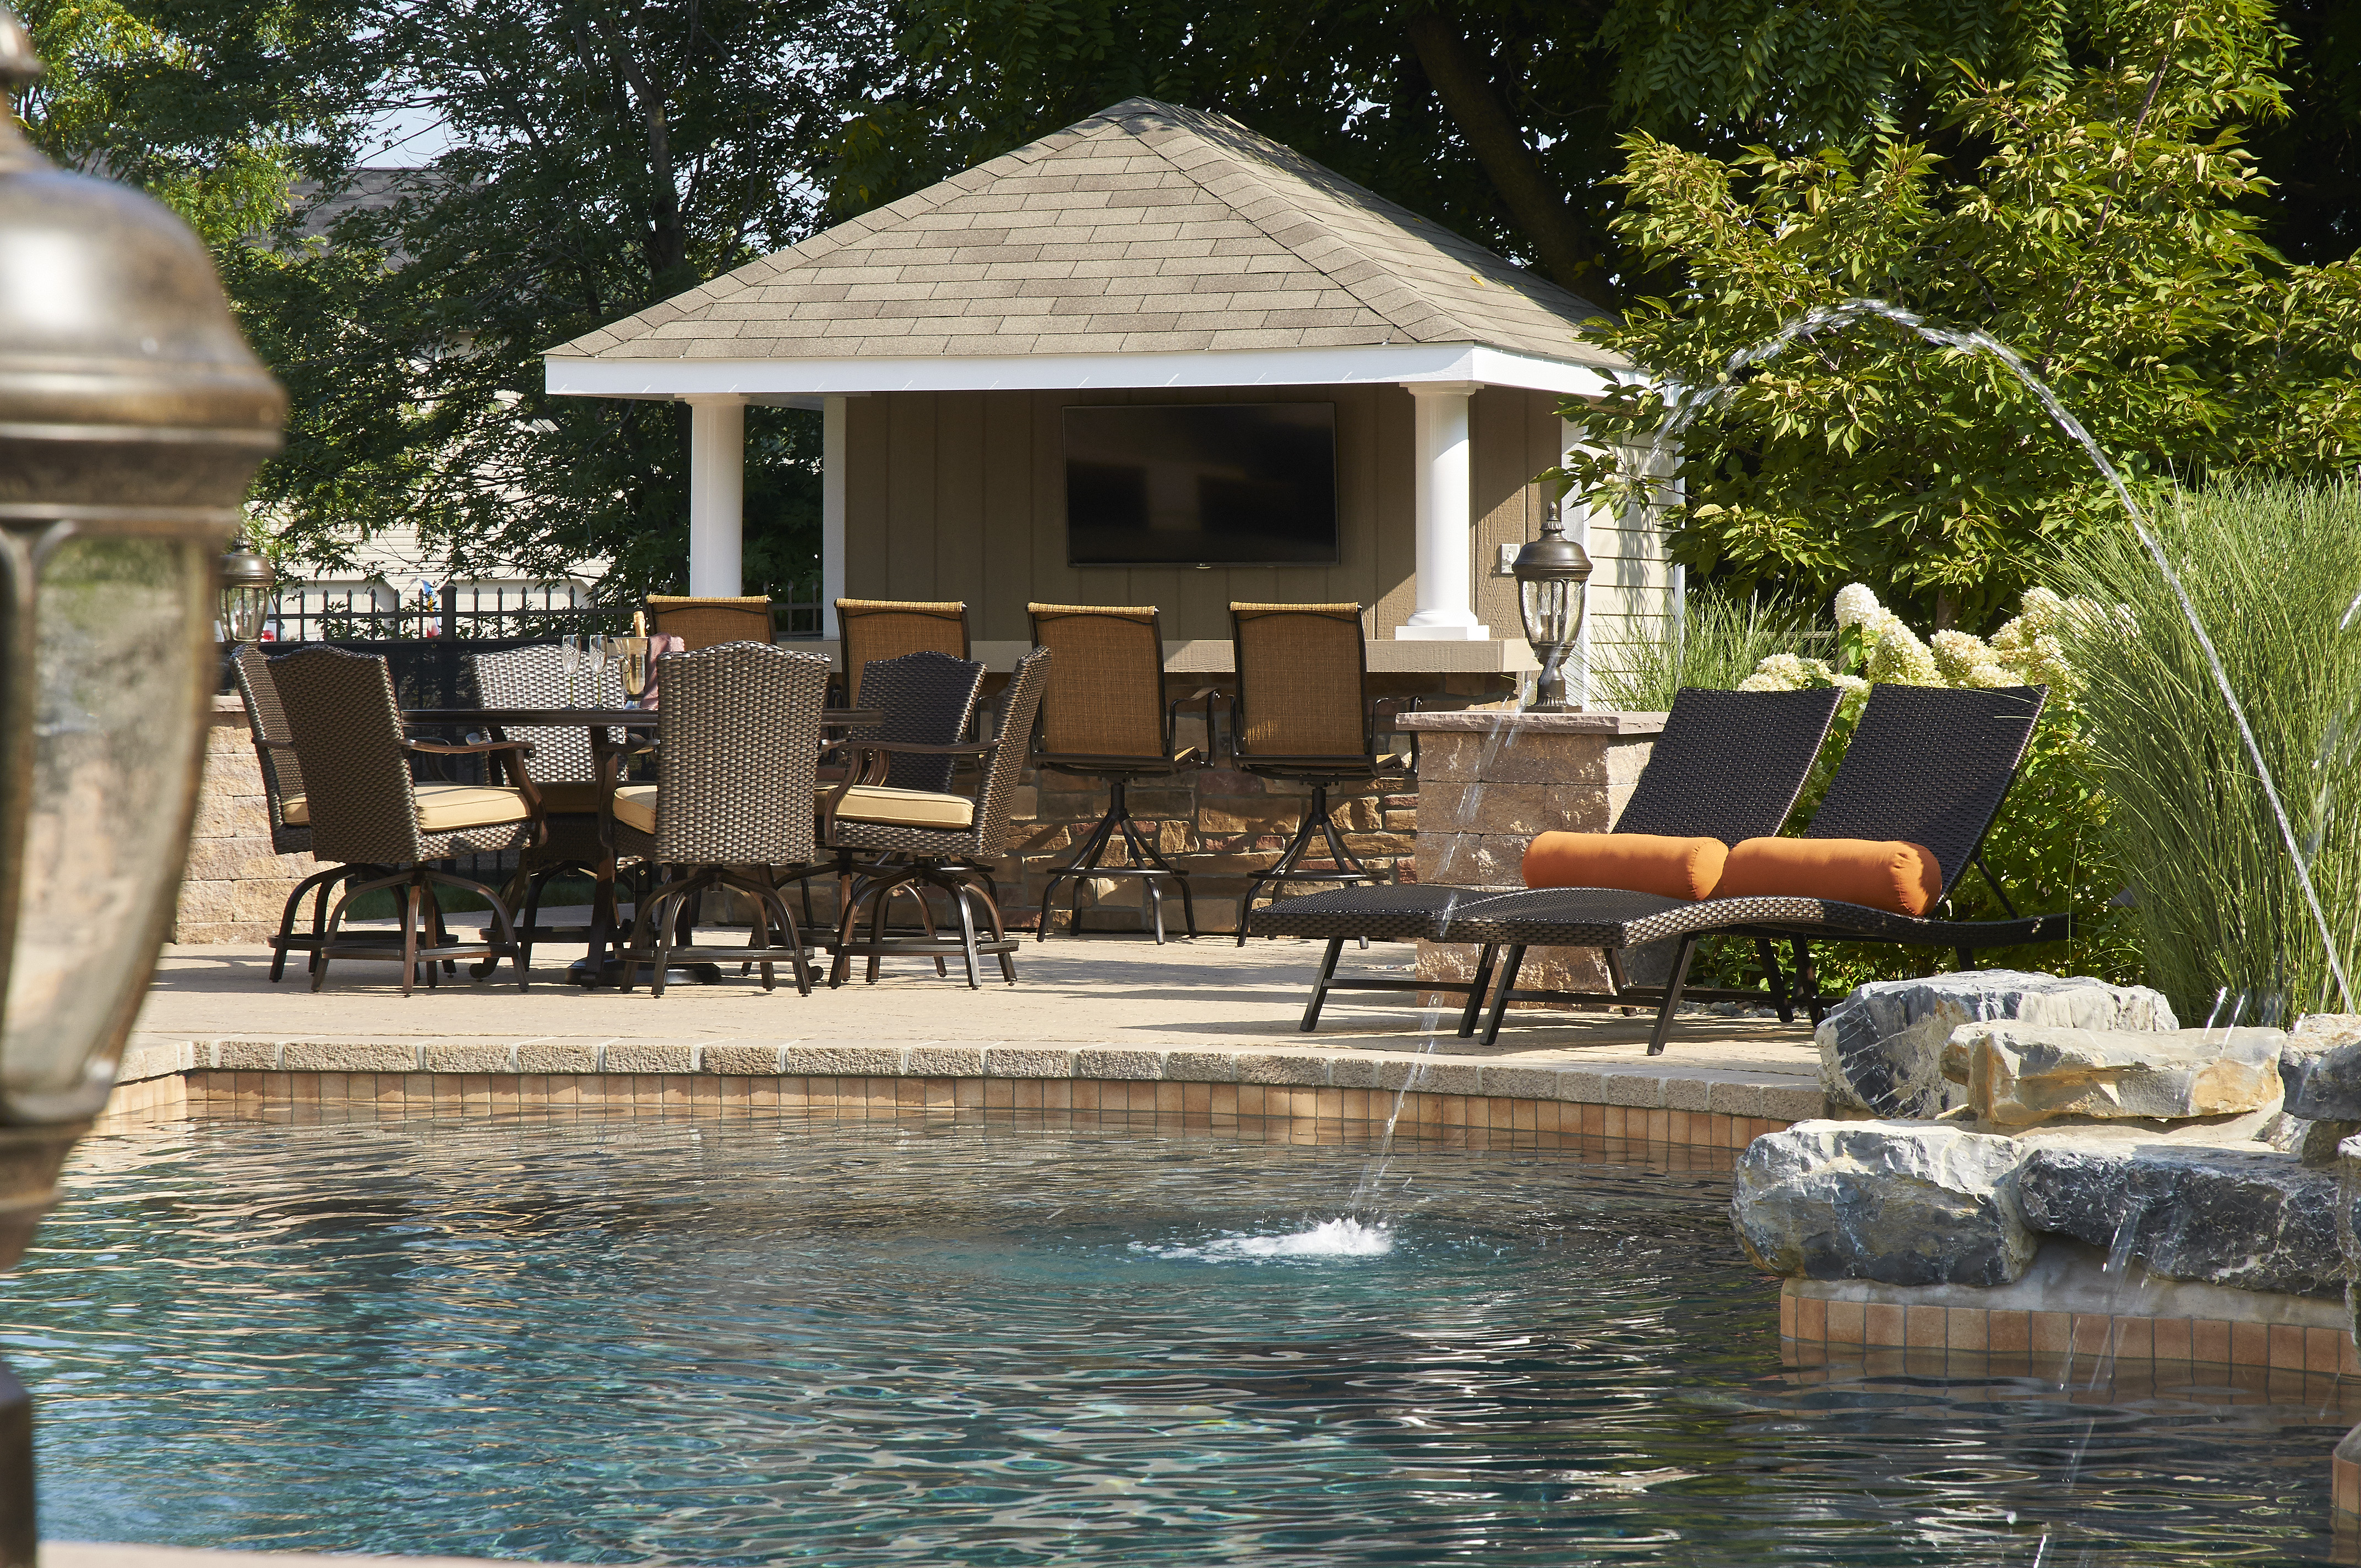 Pool Houses For Sale Pa Nj Ny Free Quote Homestead Structures in 13 Clever Designs of How to Make Backyard Pool House Ideas